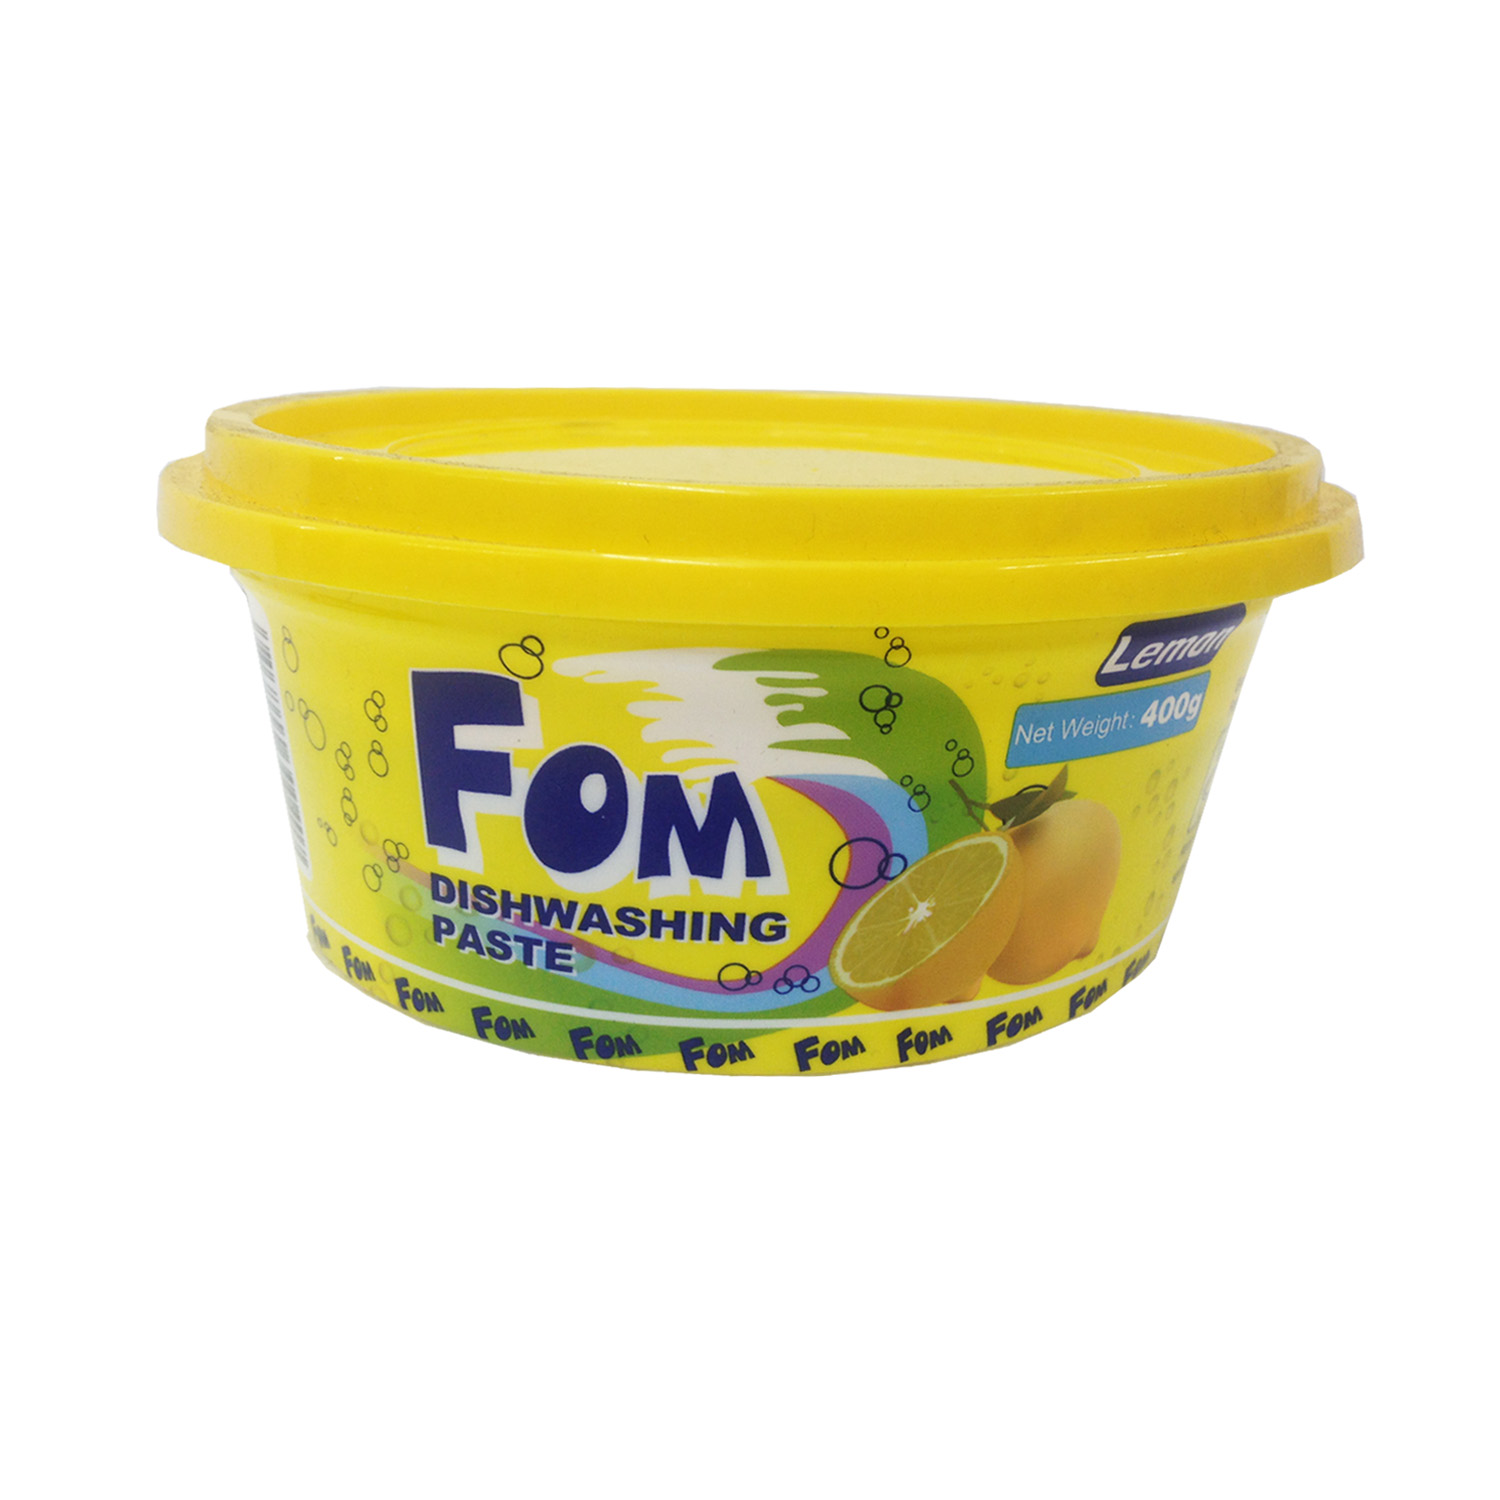 FOM Dishwashing Paste – Lemon 400g